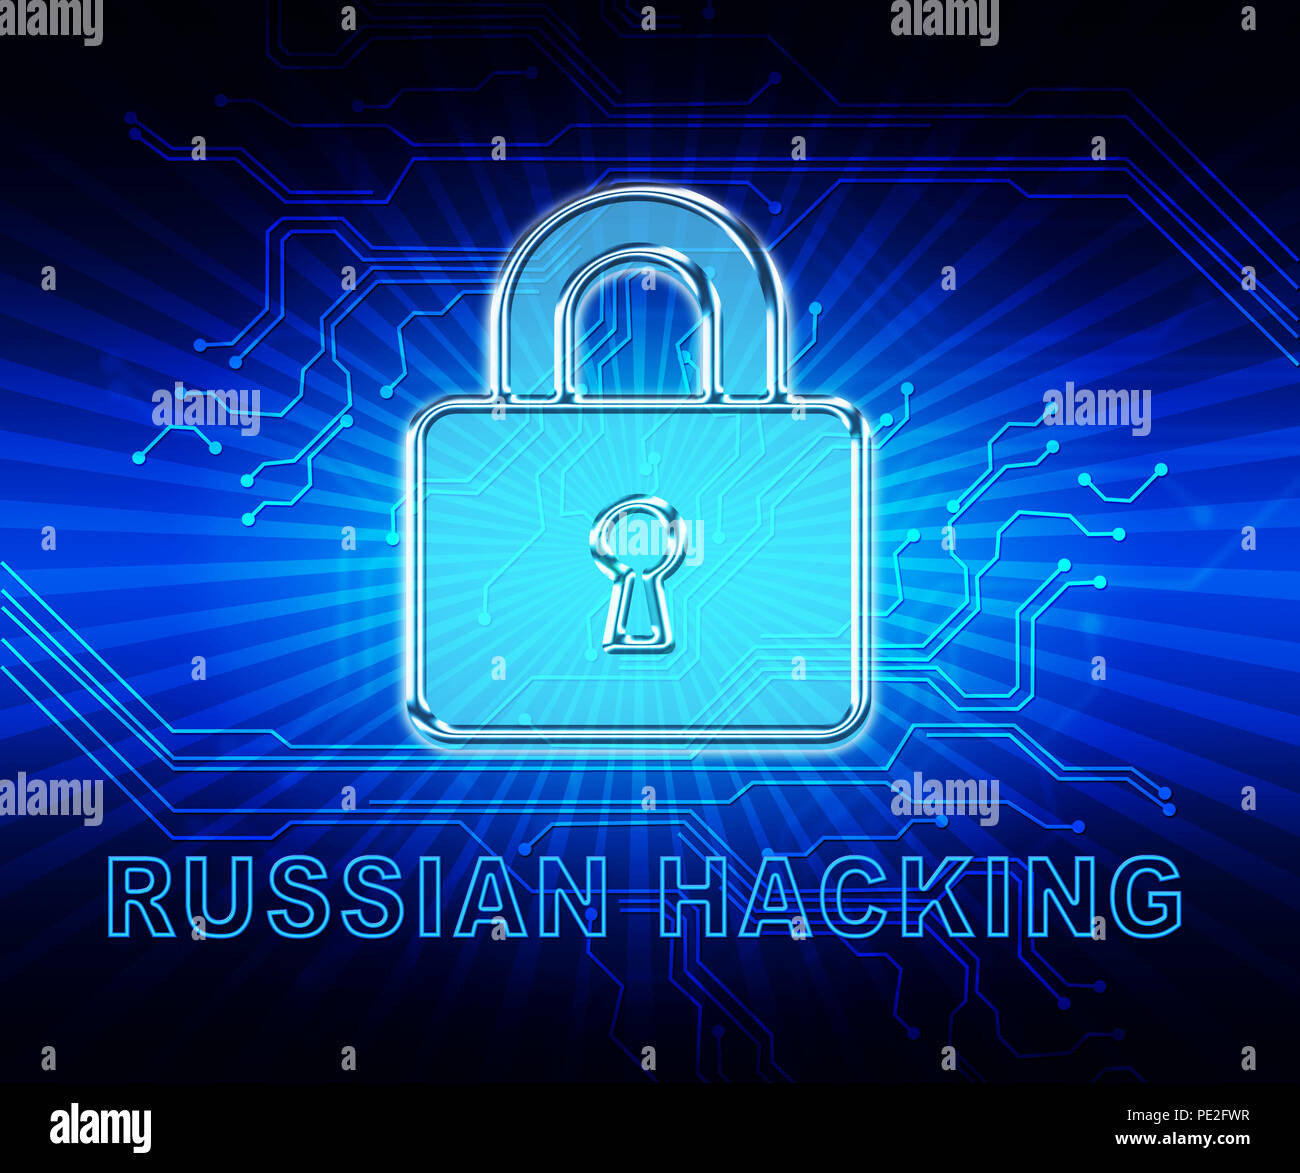 Cybersecurity Hacker Online Cyber Attacks 2d Illustration Shows Digital Spying And Breach Security For Internet Protection Against Web Hacking Stock Photo